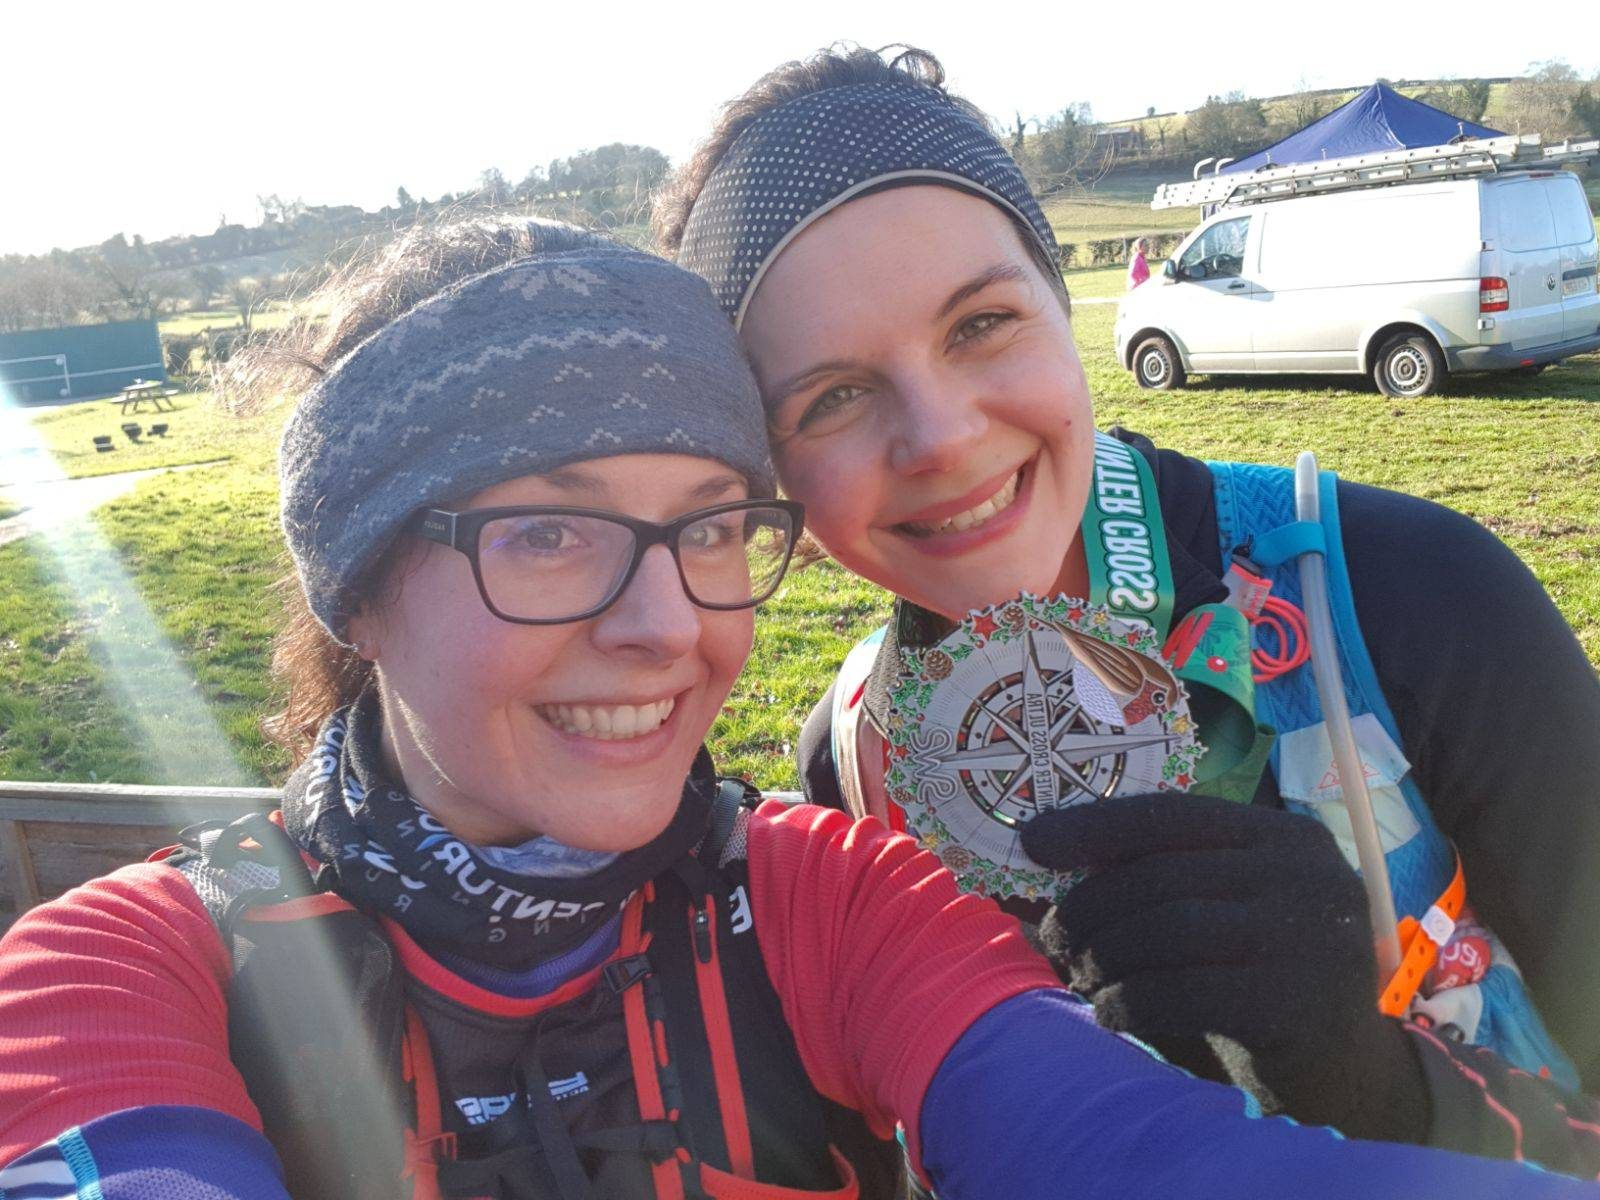 Saying no to the Chrimbo Limbo with the Winter Cross Ultra